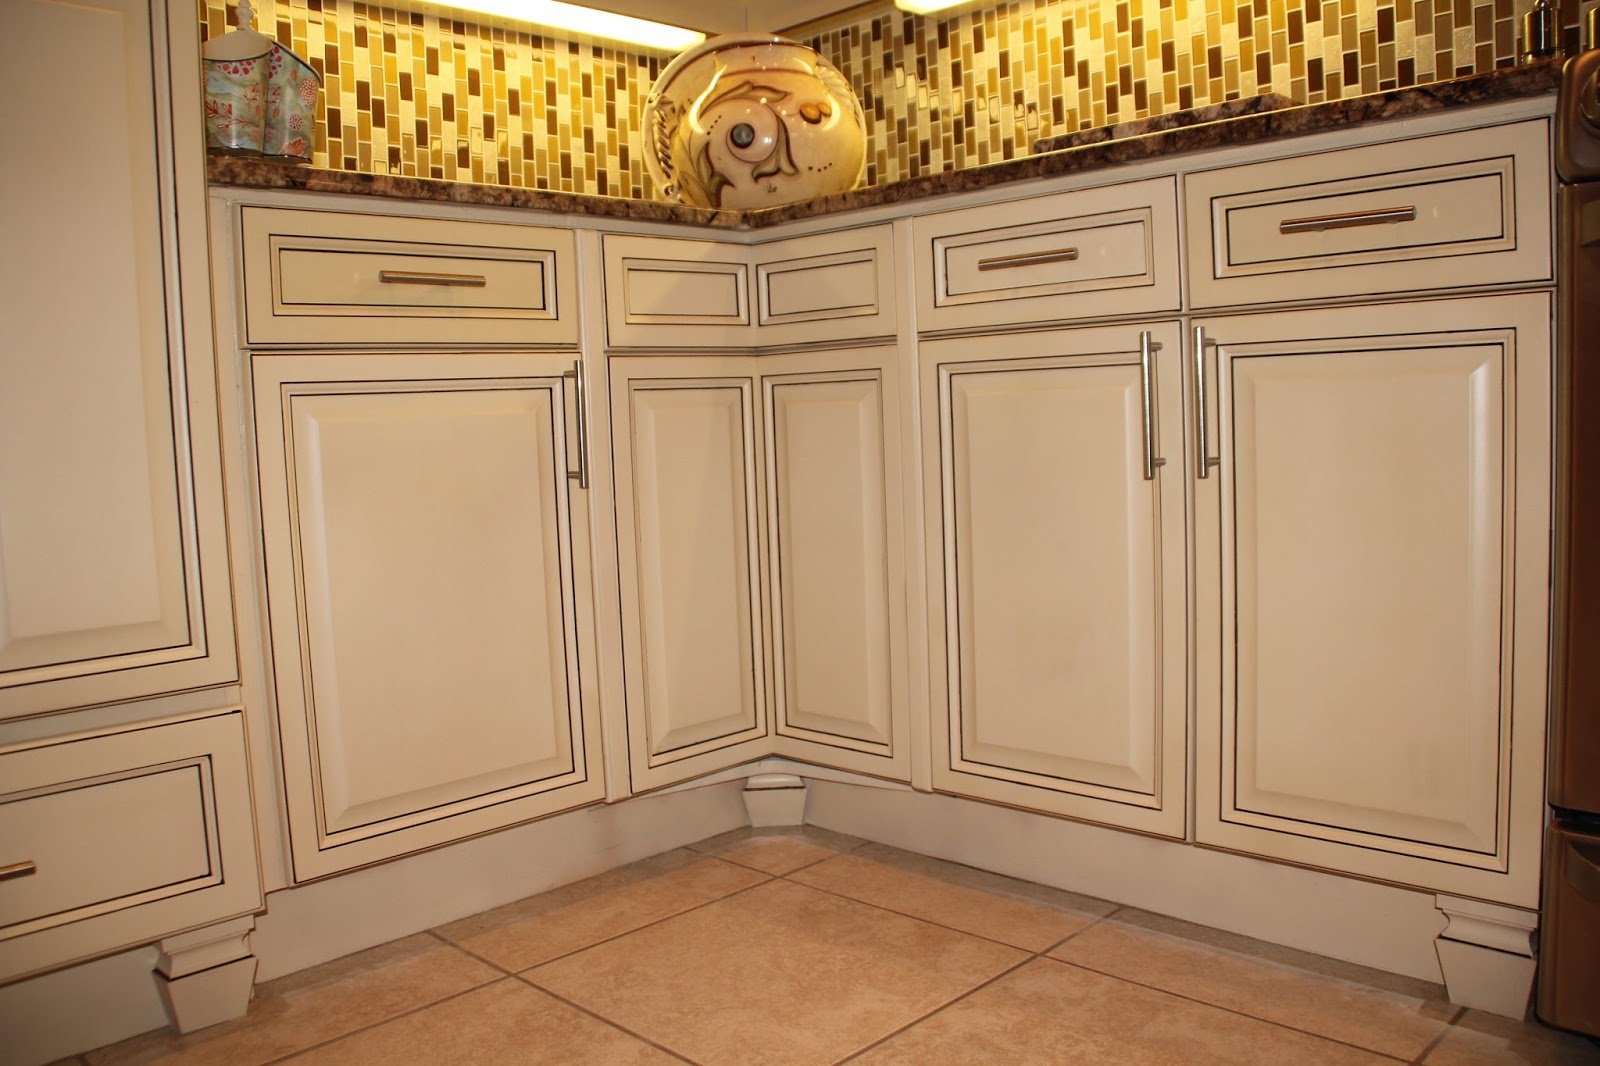 Can You Use Chalk Paint For Kitchen Cabinets Robyn Story Designs And Boutique: Finally!!! The Final Reveal